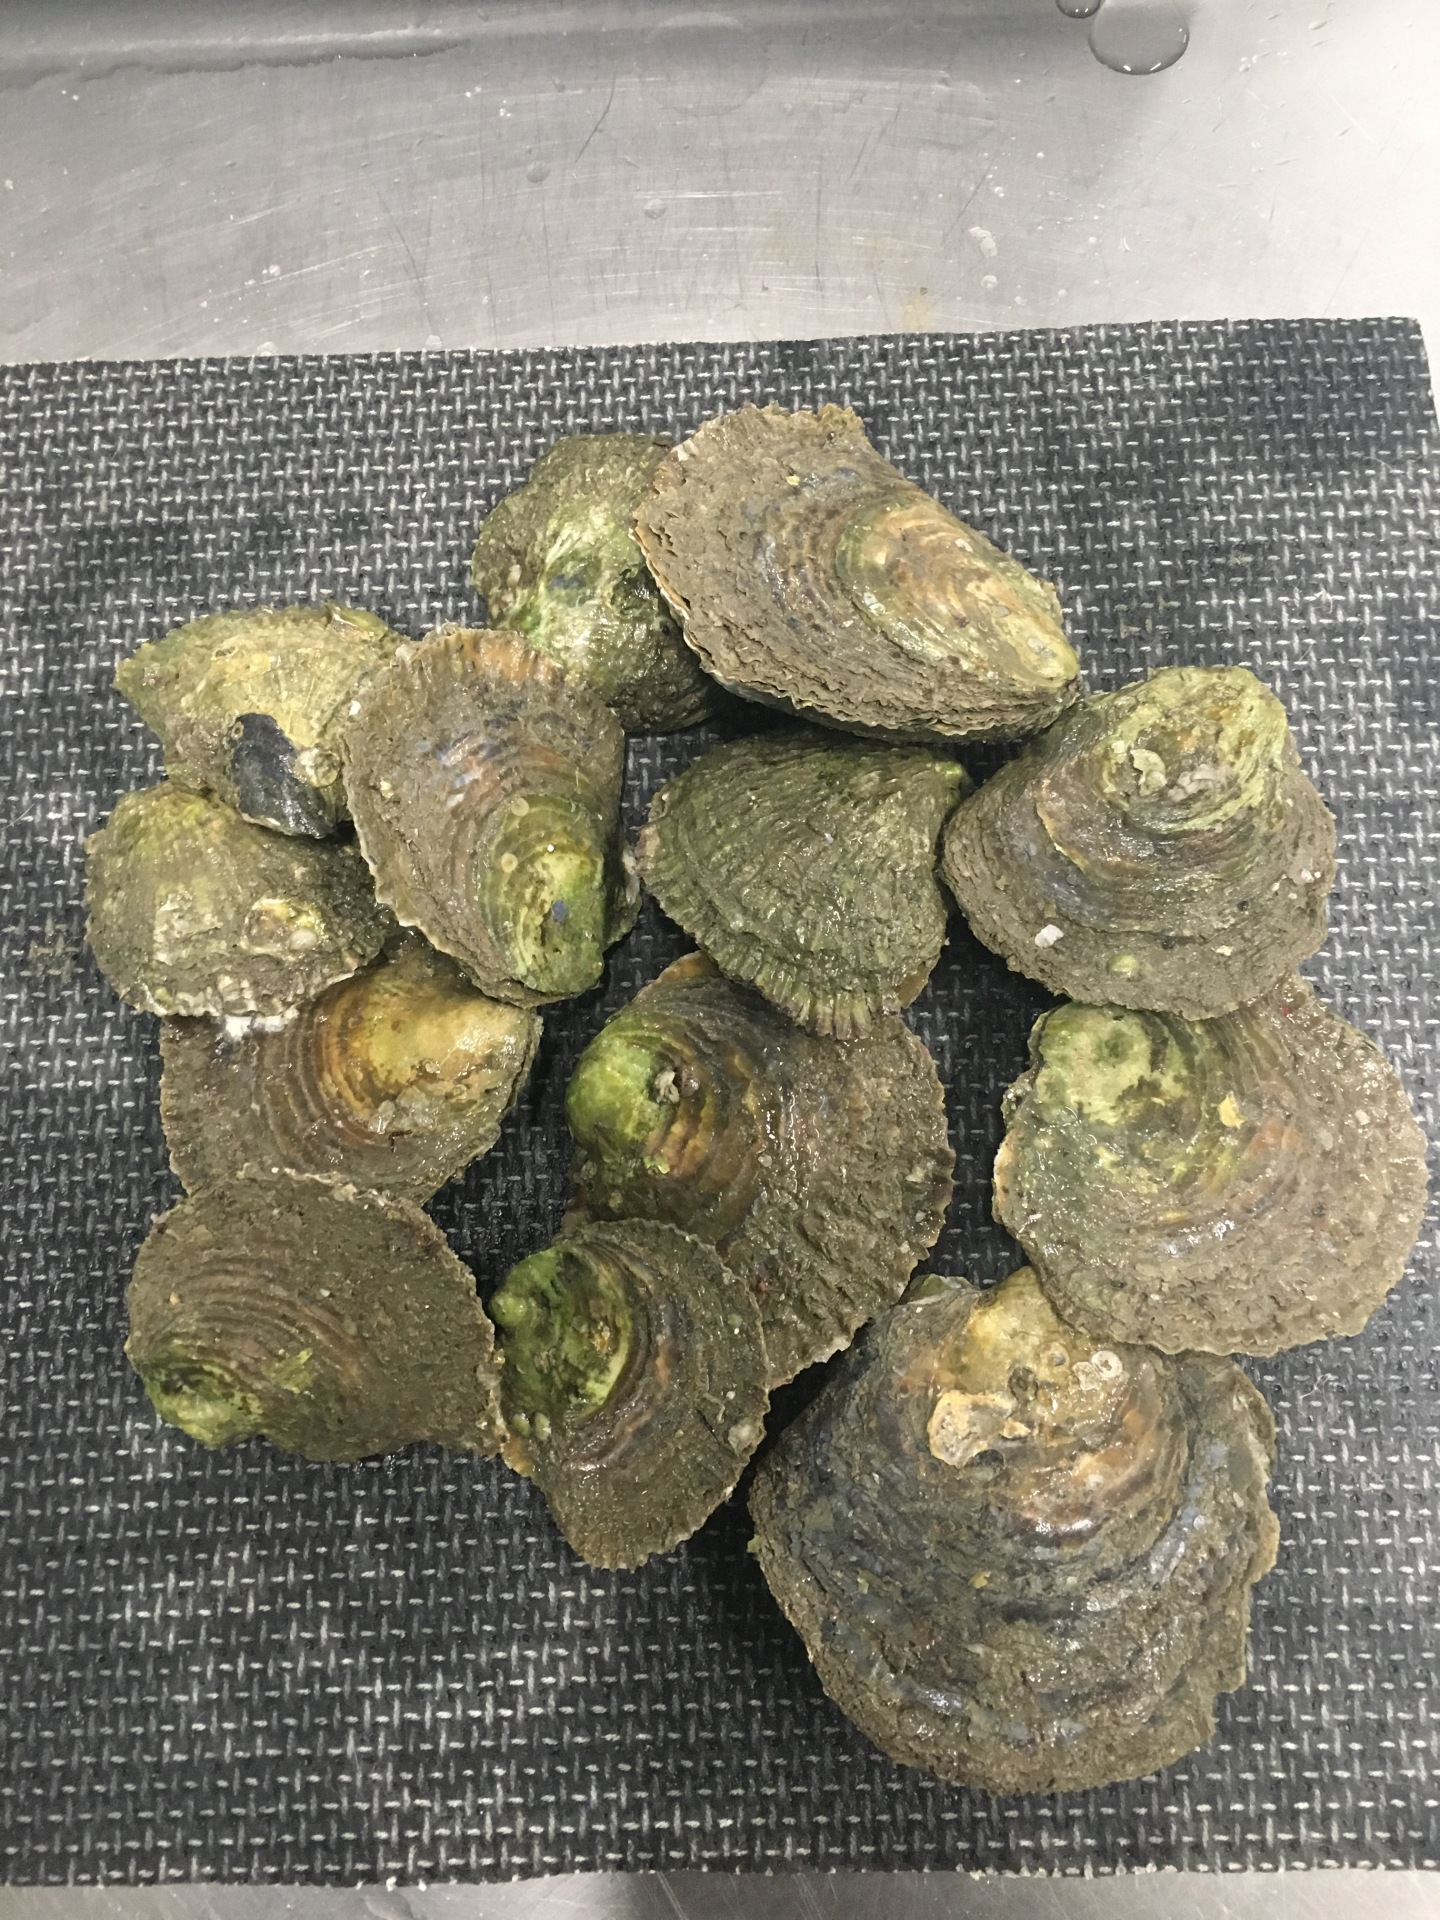 Wild Caught Oysters